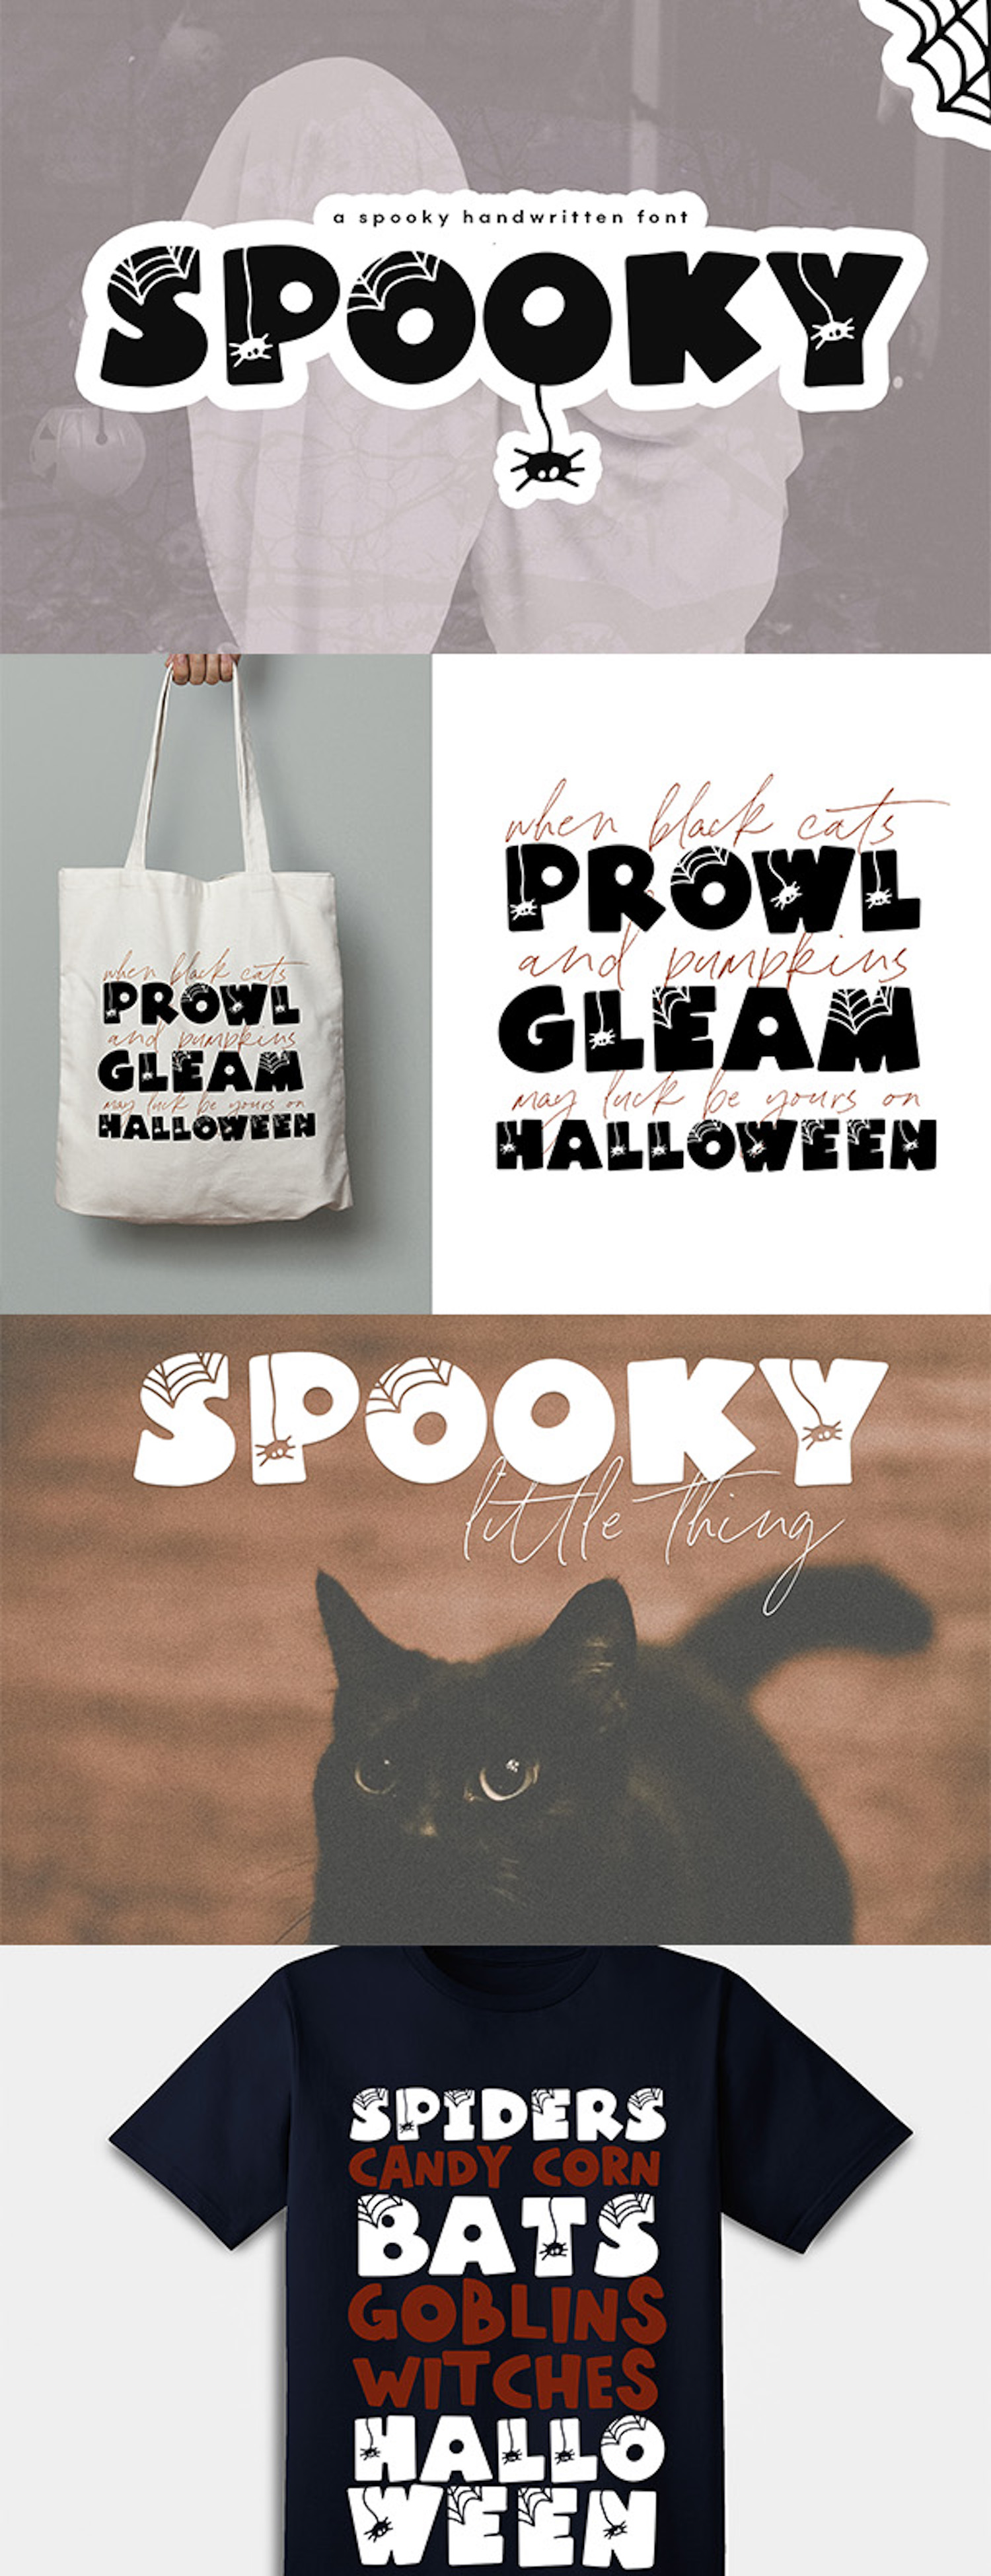 Spooky - A Quirky Halloween Font example image 2